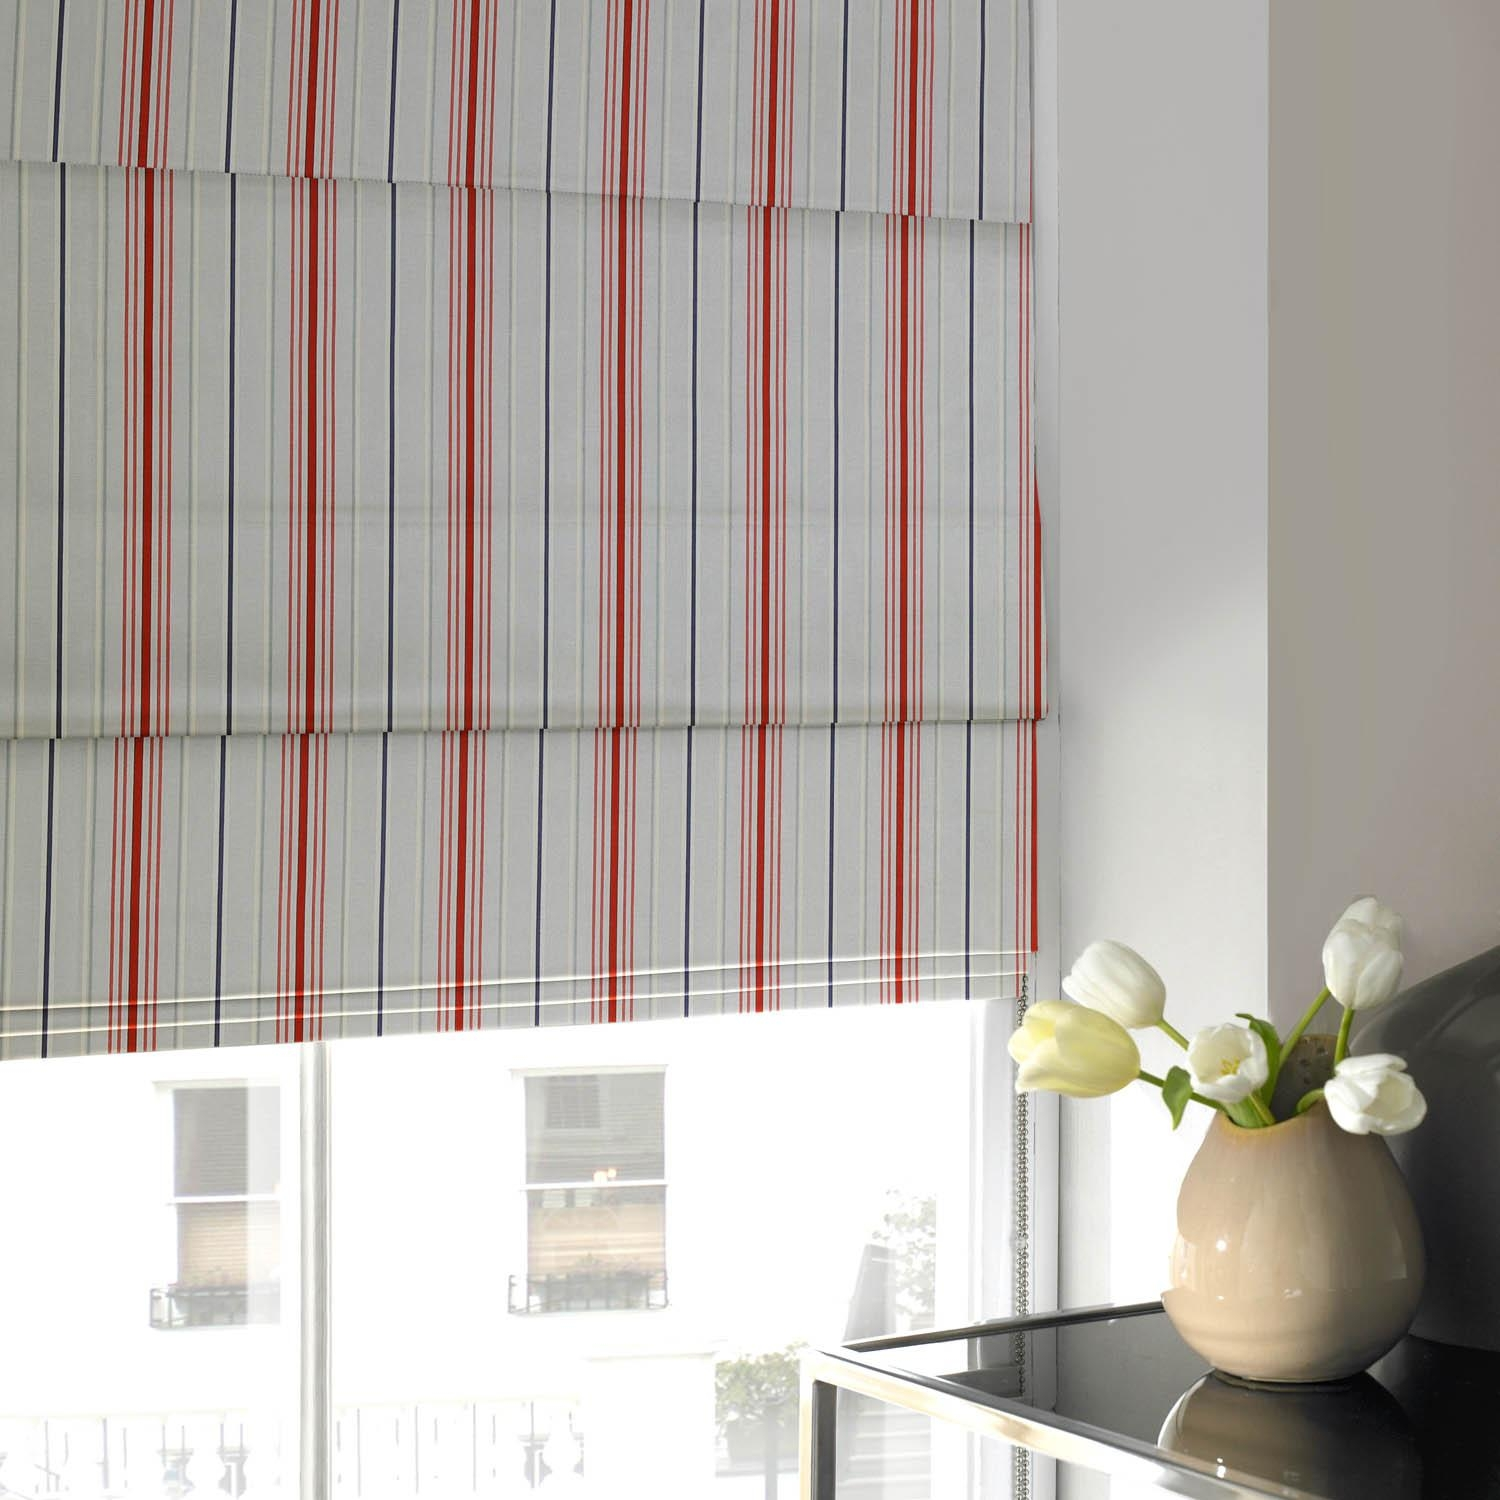 Redwhiteblue Candy Stripe Roman Blind Google Search Roman Regarding Blue And White Striped Roman Blinds (Image 10 of 15)